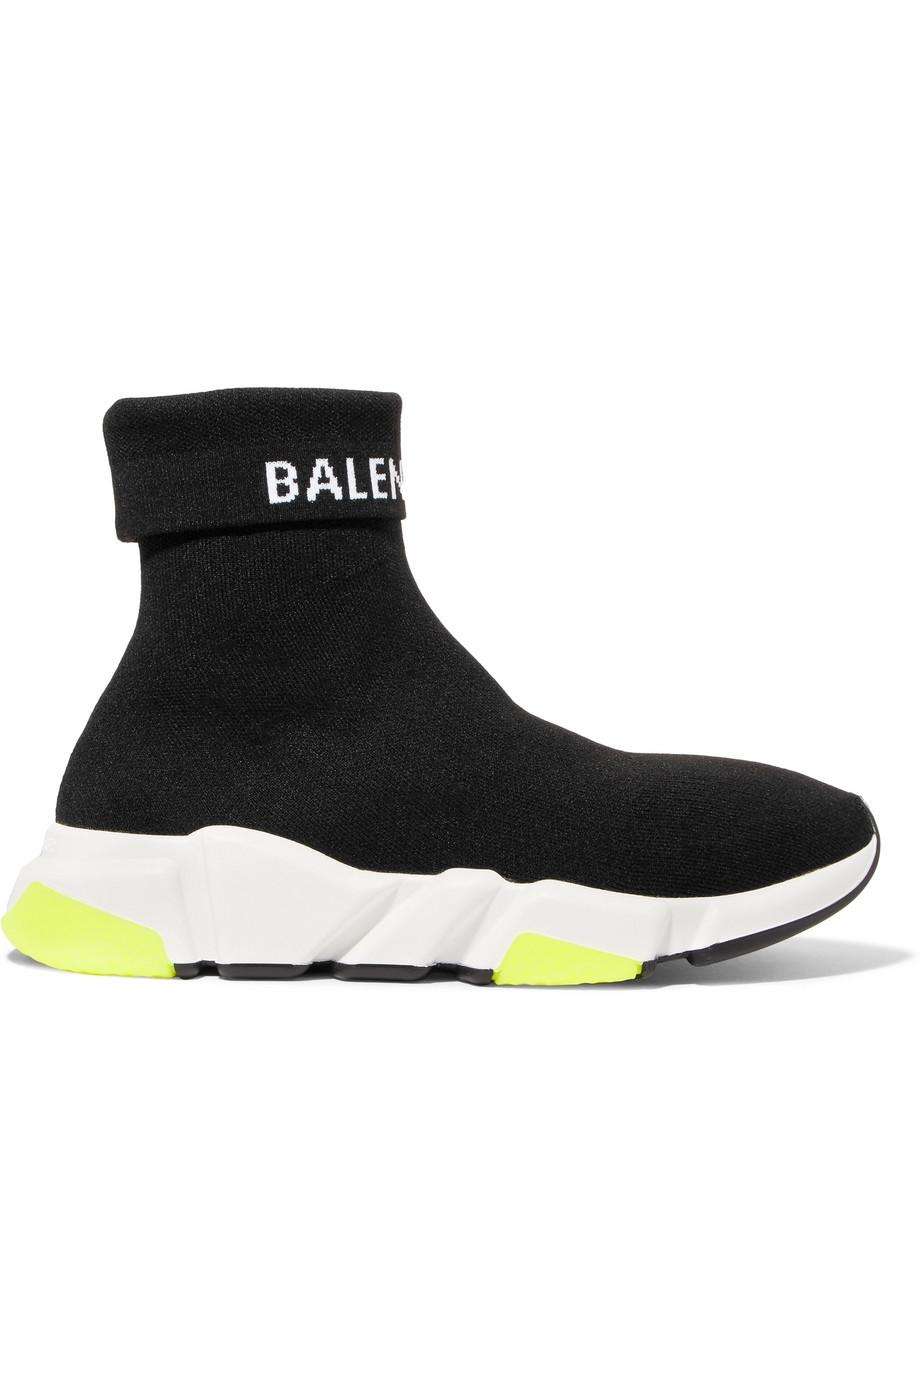 Balenciaga Black Speed Logo-intarsia Stretch-knit High-top Sneakers It40 Sneakers Size EU 40 (Approx. US 10) Regular (M, B)